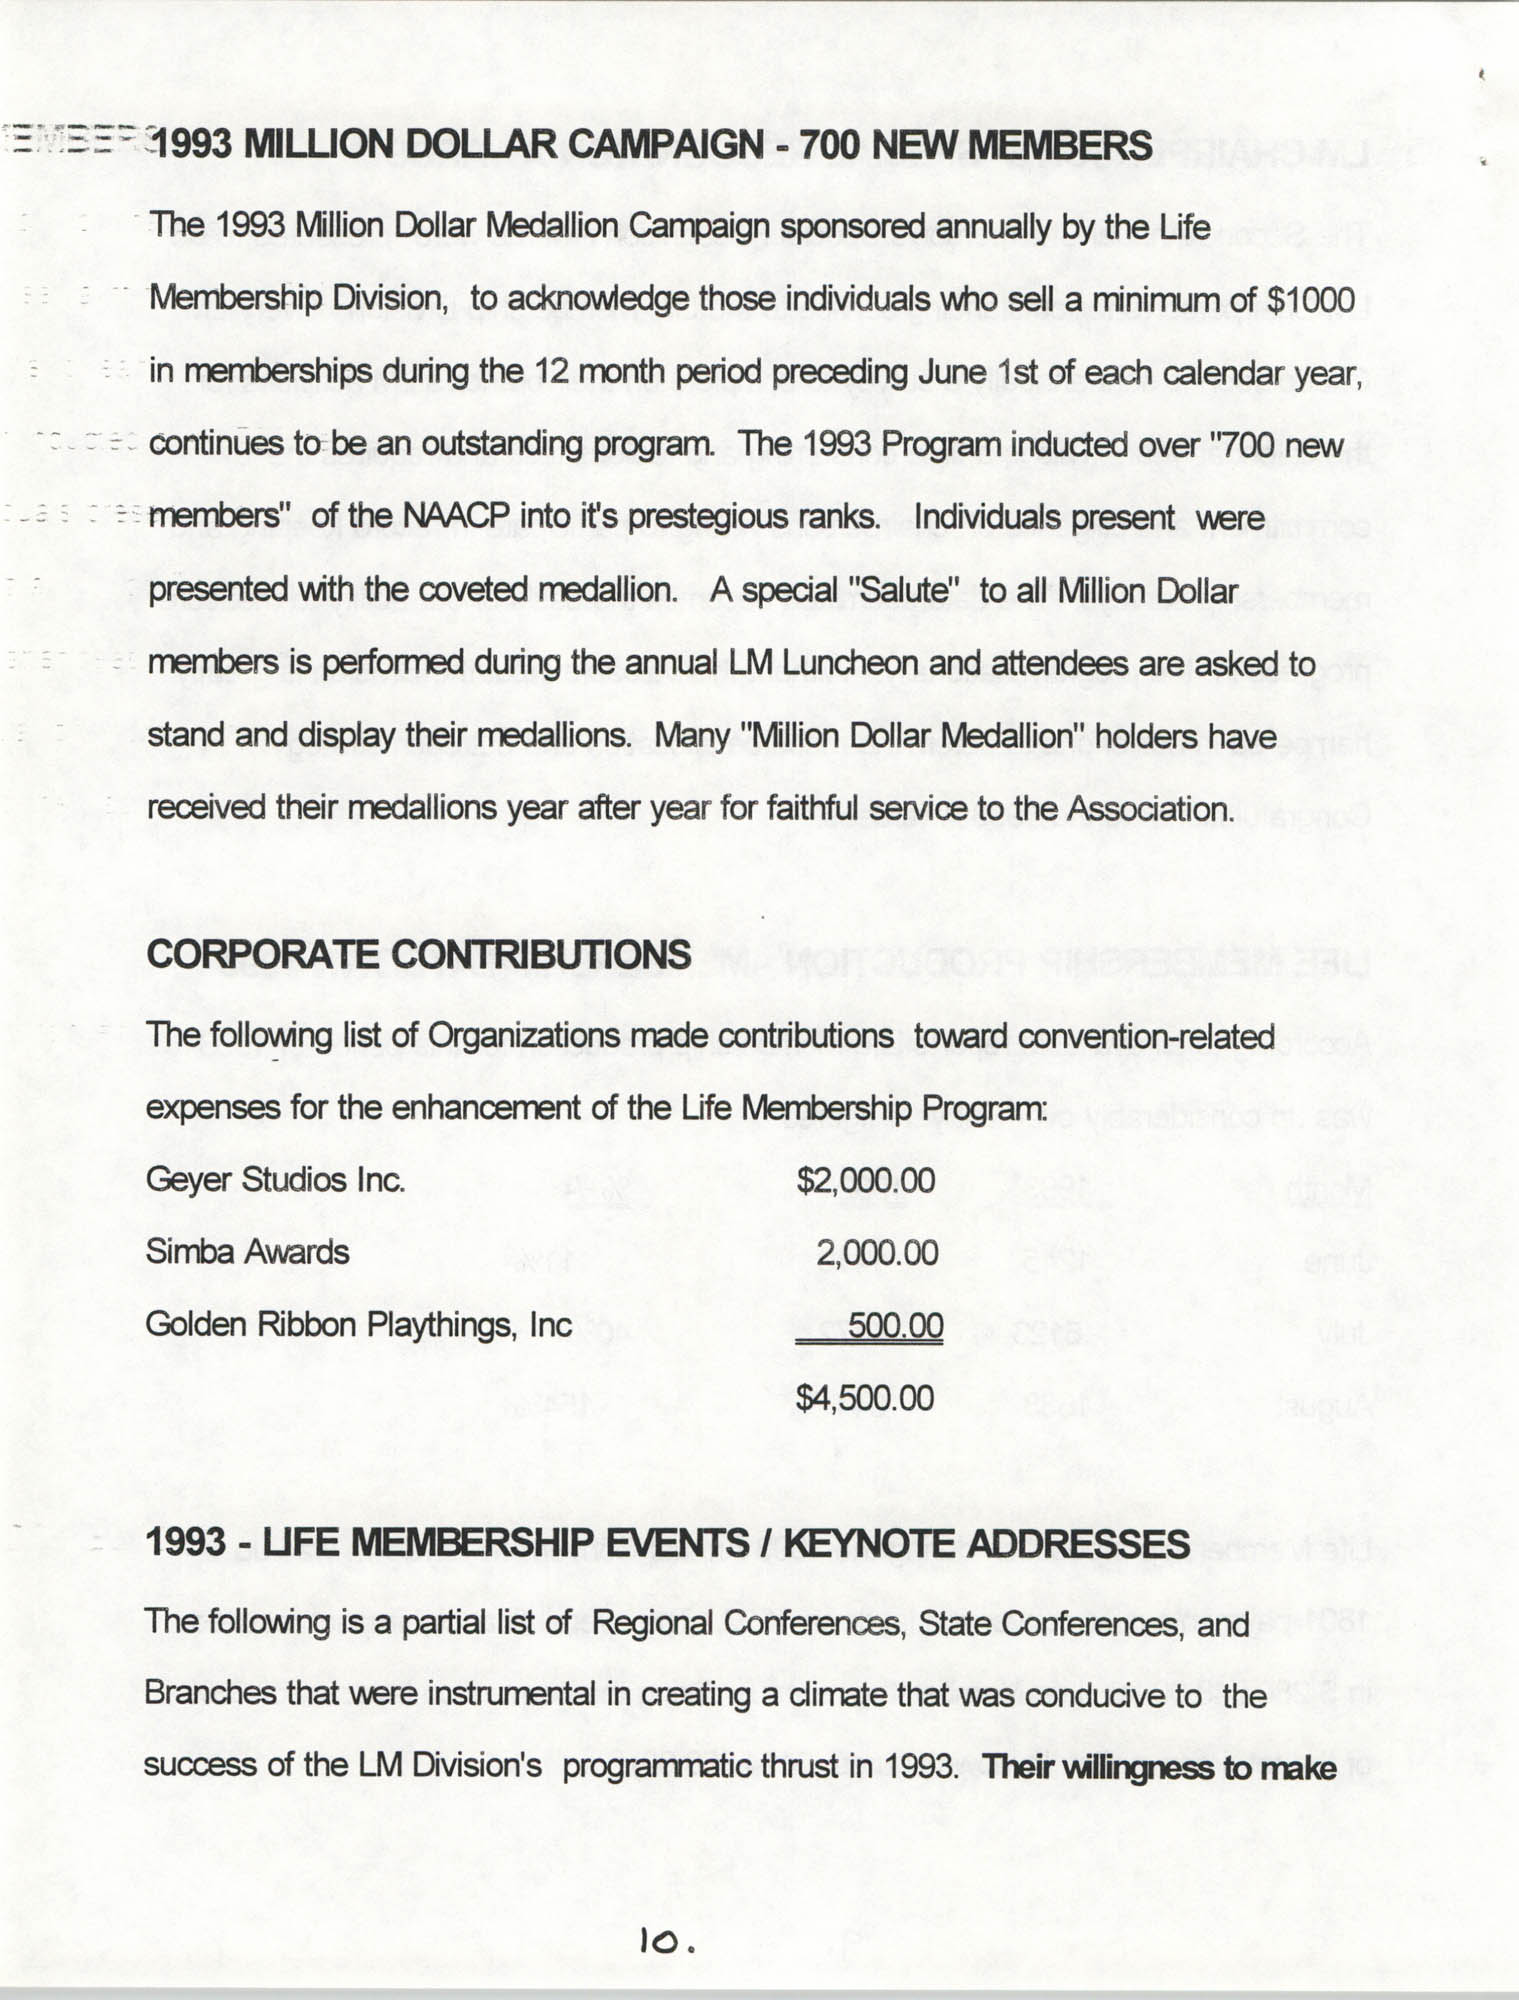 Life Membership Division, 1993 Annual Report, Page 10